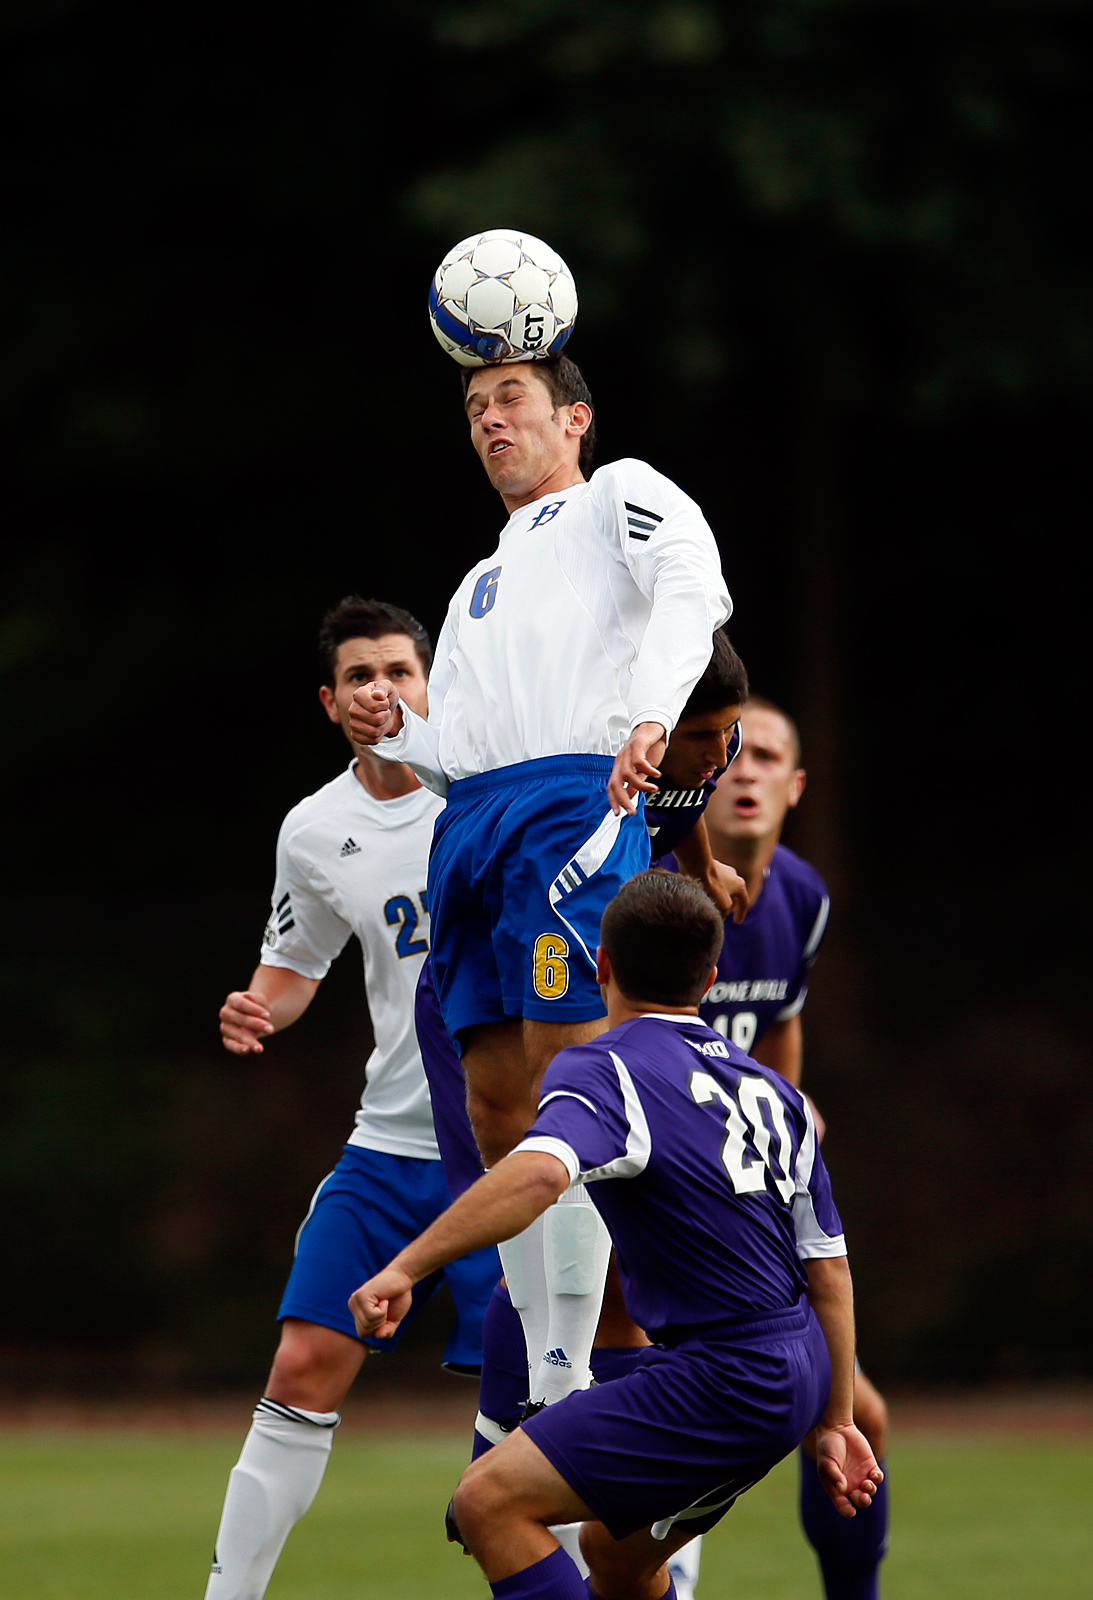 A Bentley University player heads a ball in a mens soccer competition against Stonehill College.